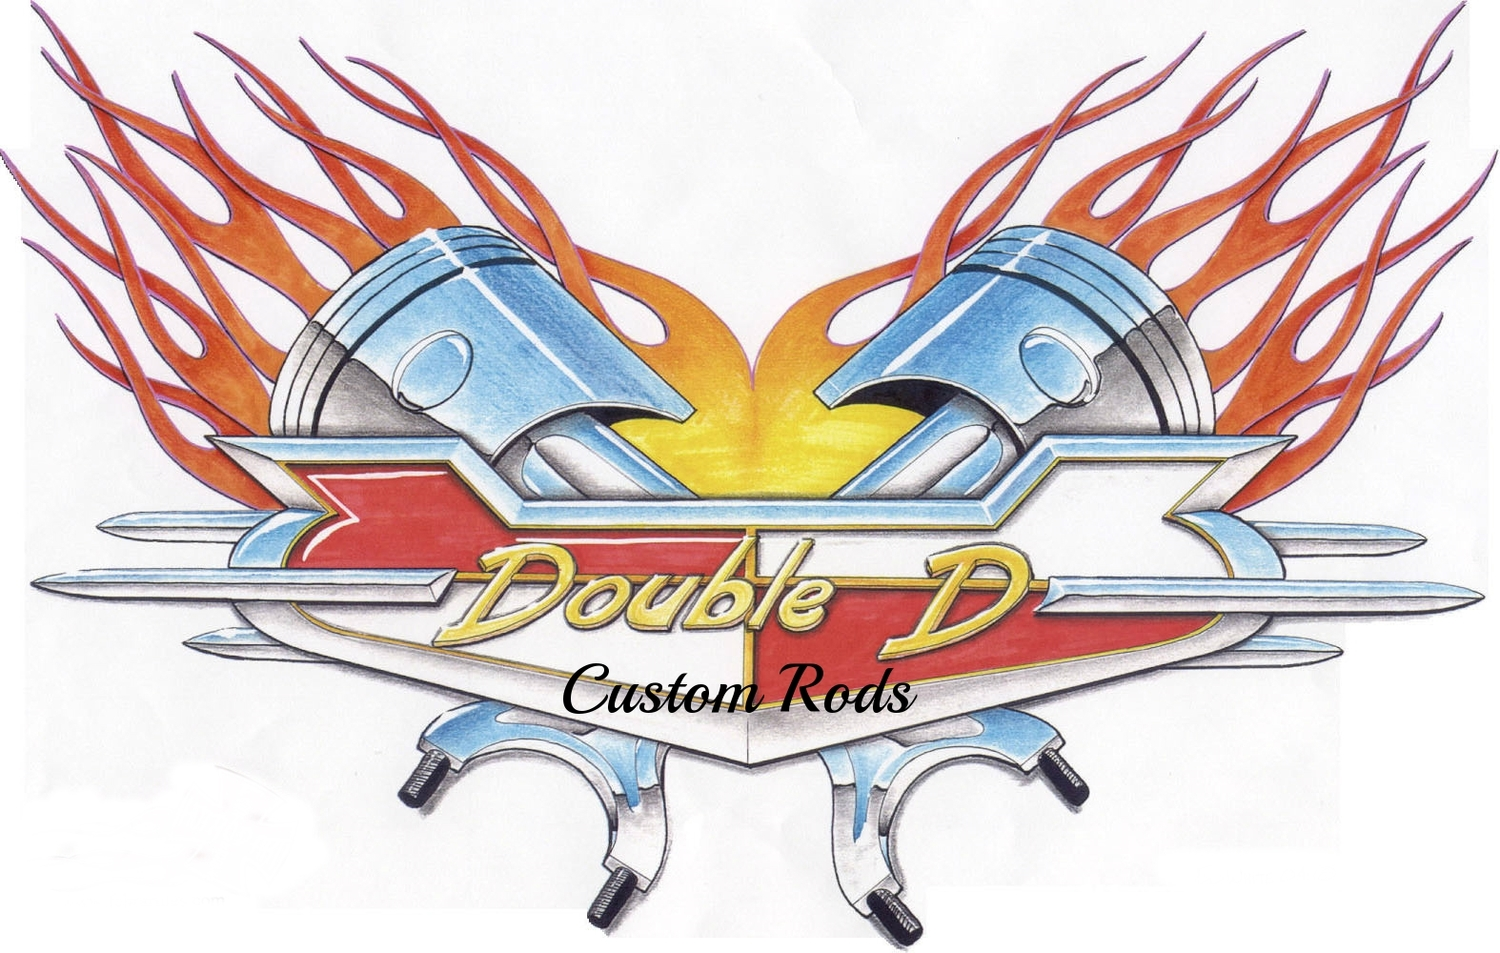 Double D Custom Rods